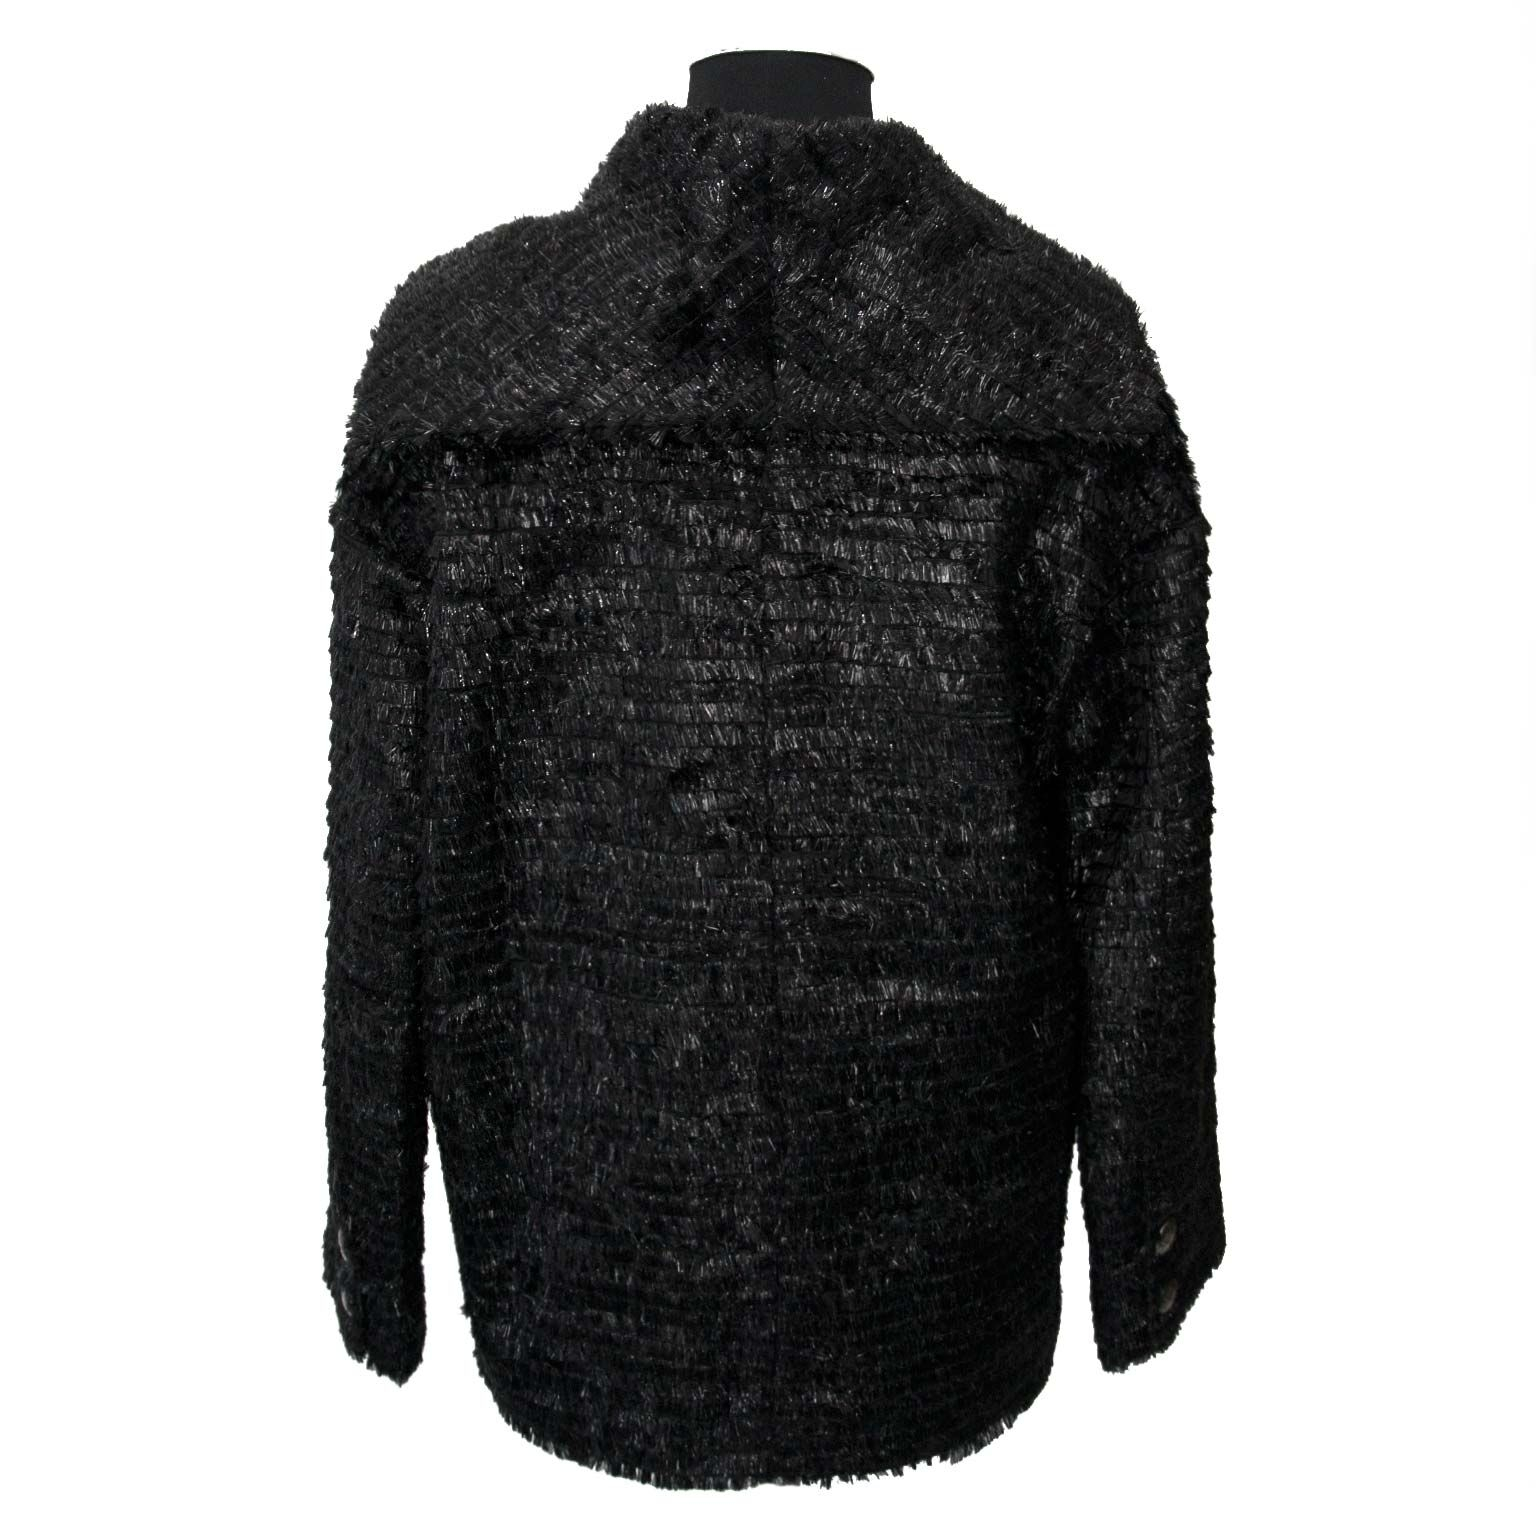 buy secondhand chanel black fabric vest at a good price at labellov